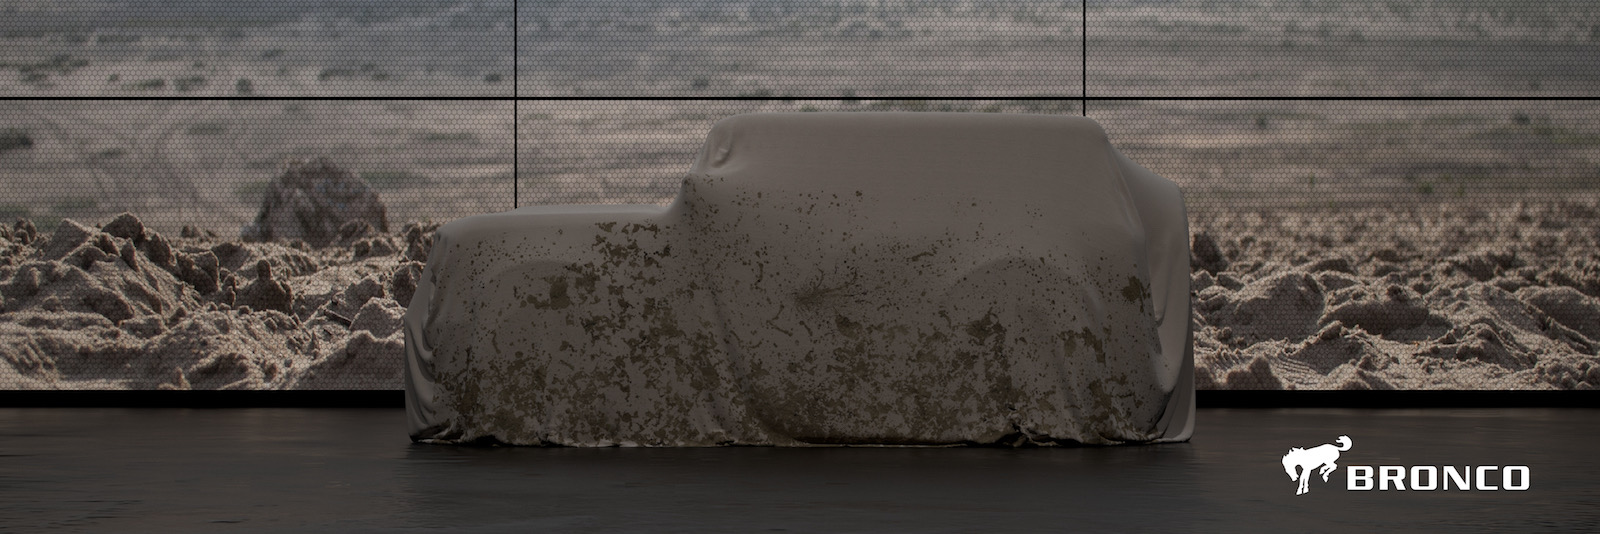 2021 Ford Bronco Teased 2 Amp 4 Doors And Hybrid Coming